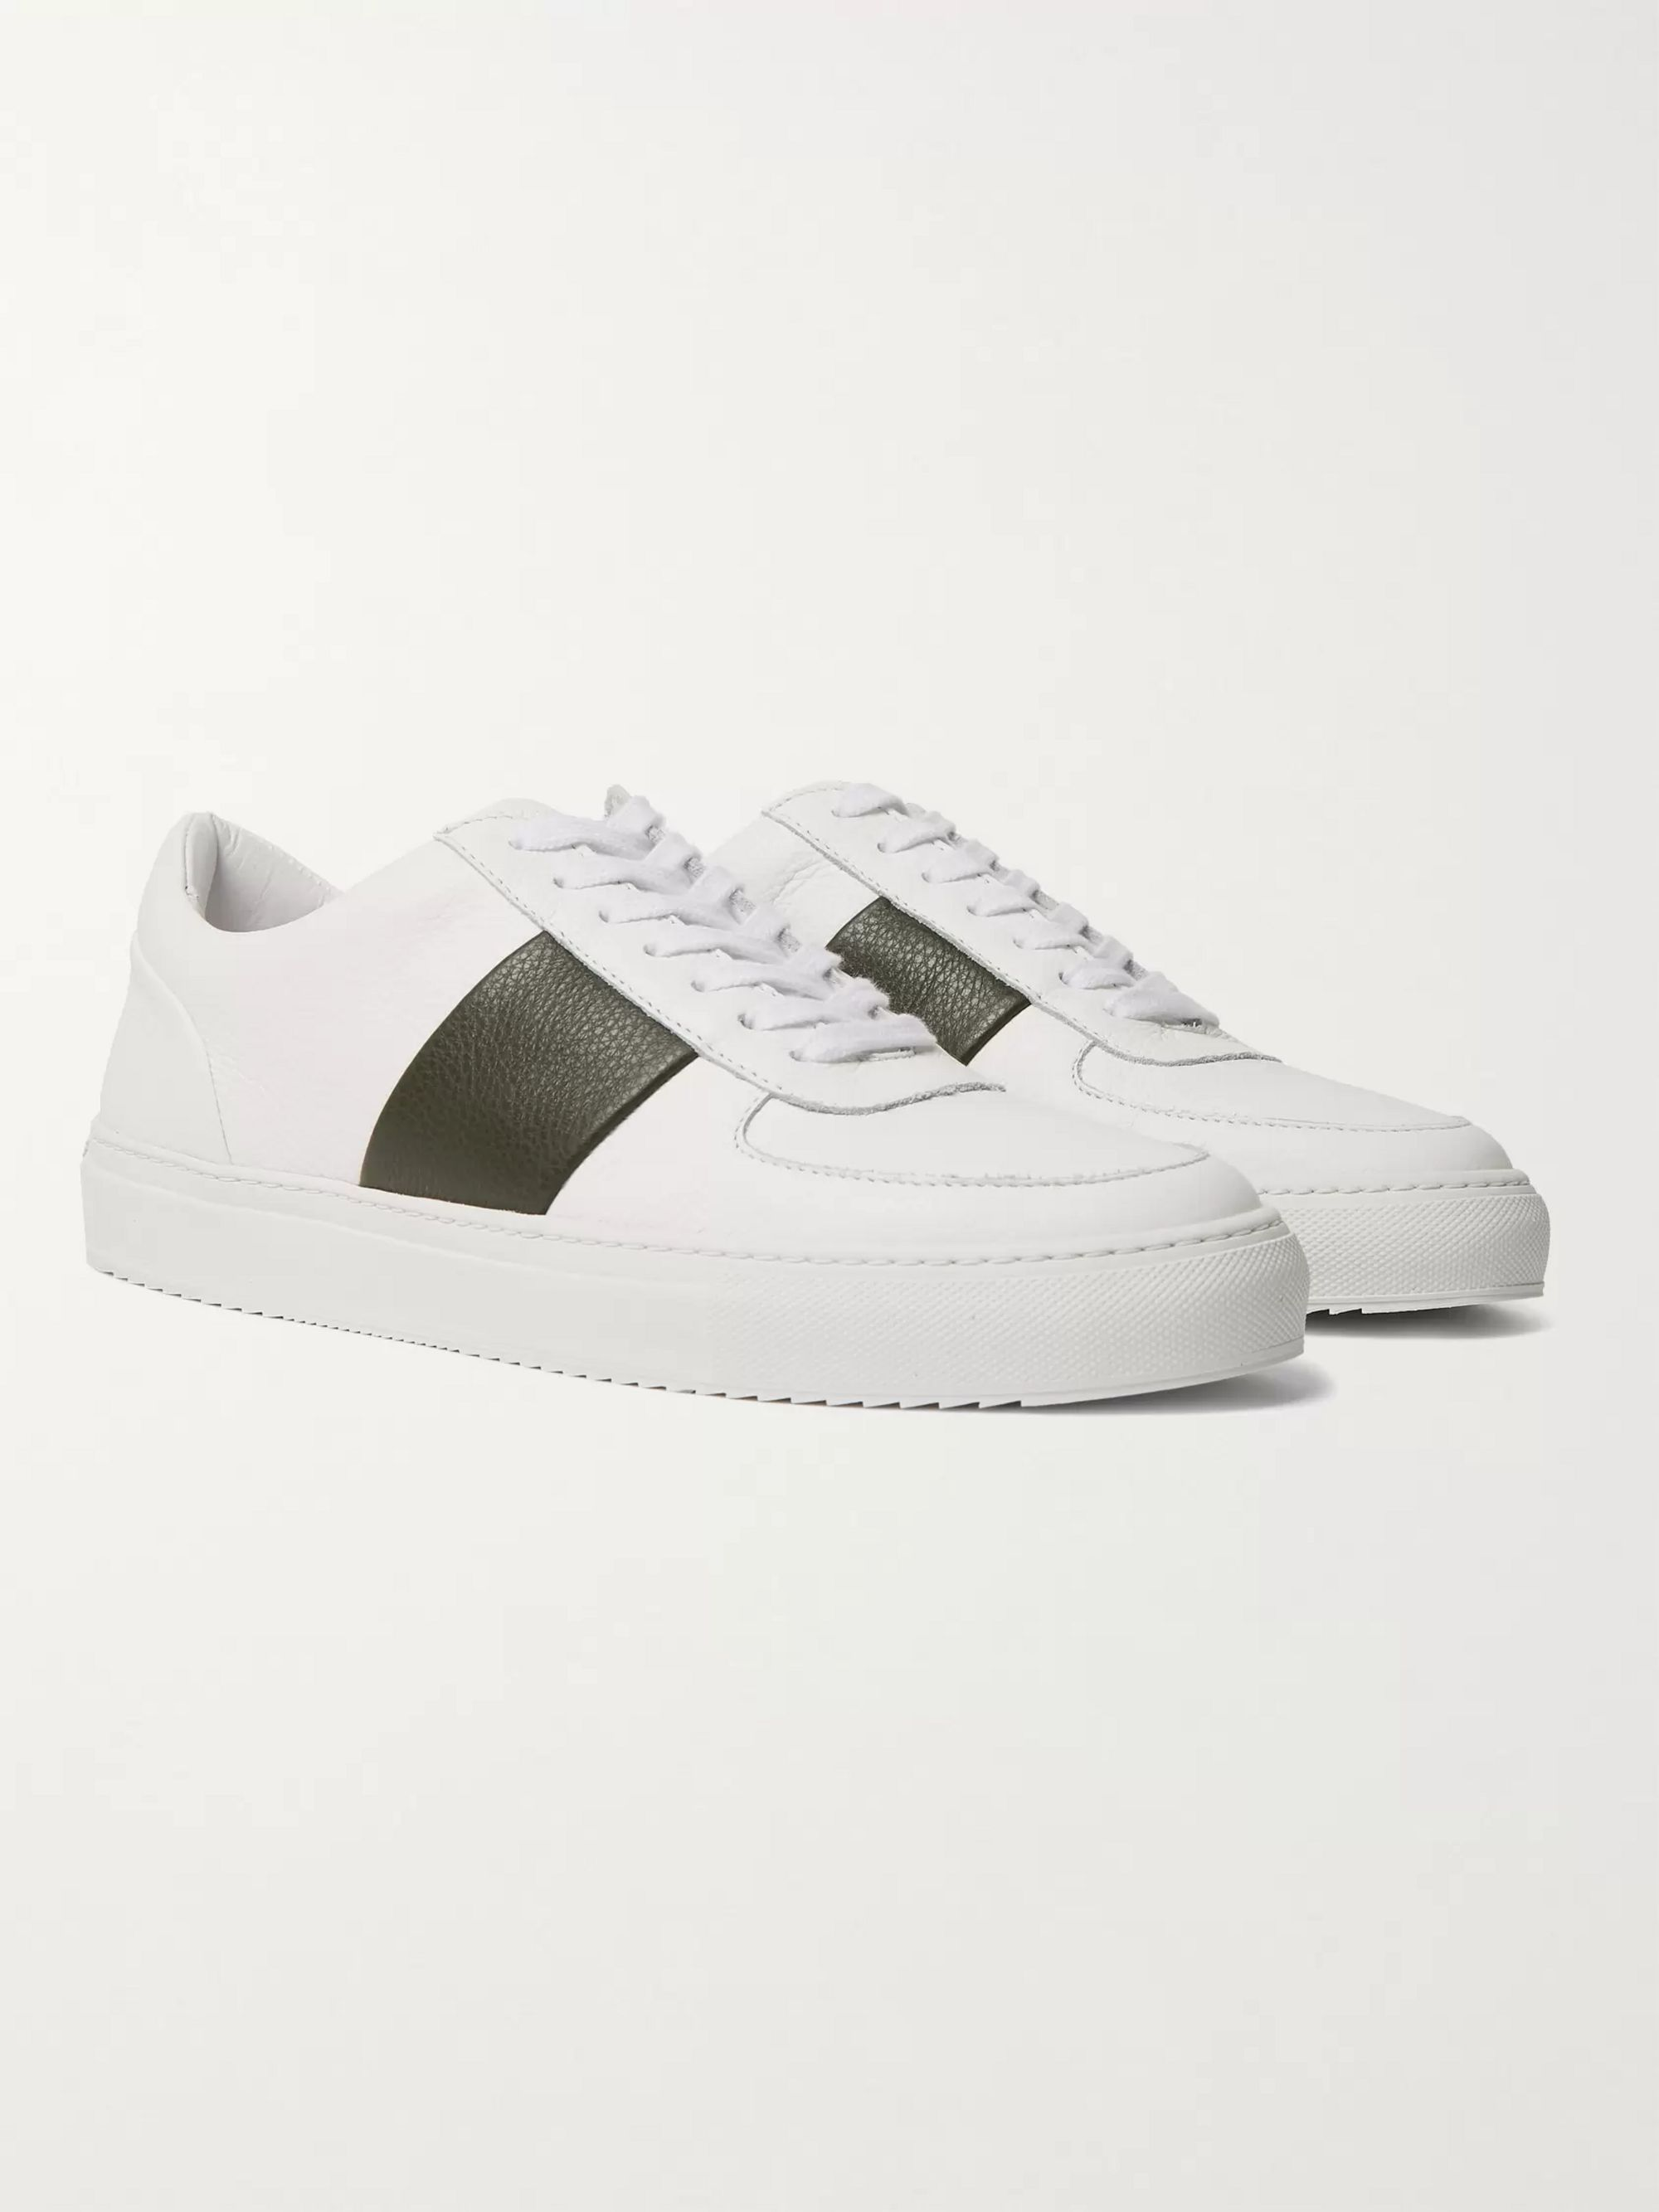 Larry Leather Sneakers | Mr P. | MR PORTER